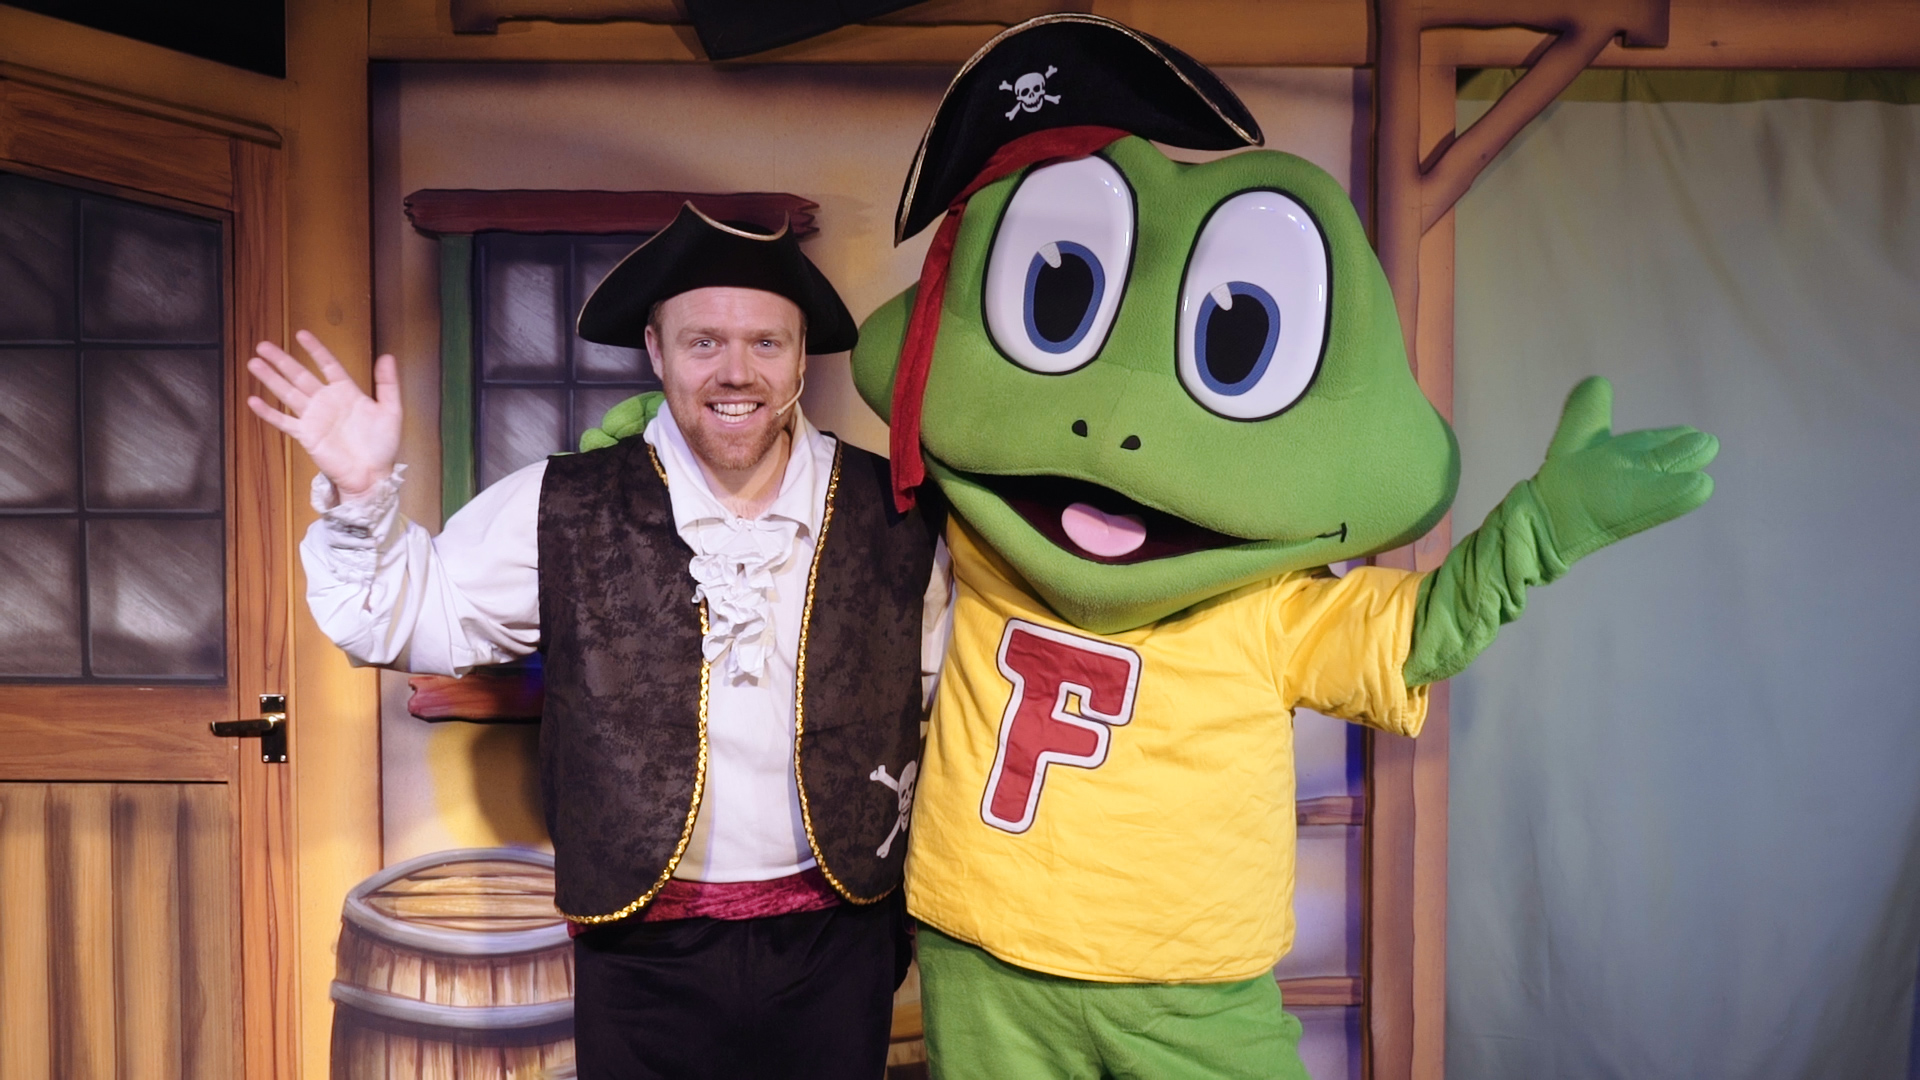 Set sail with Captain Freddo in a brand new live show at Cadbury World